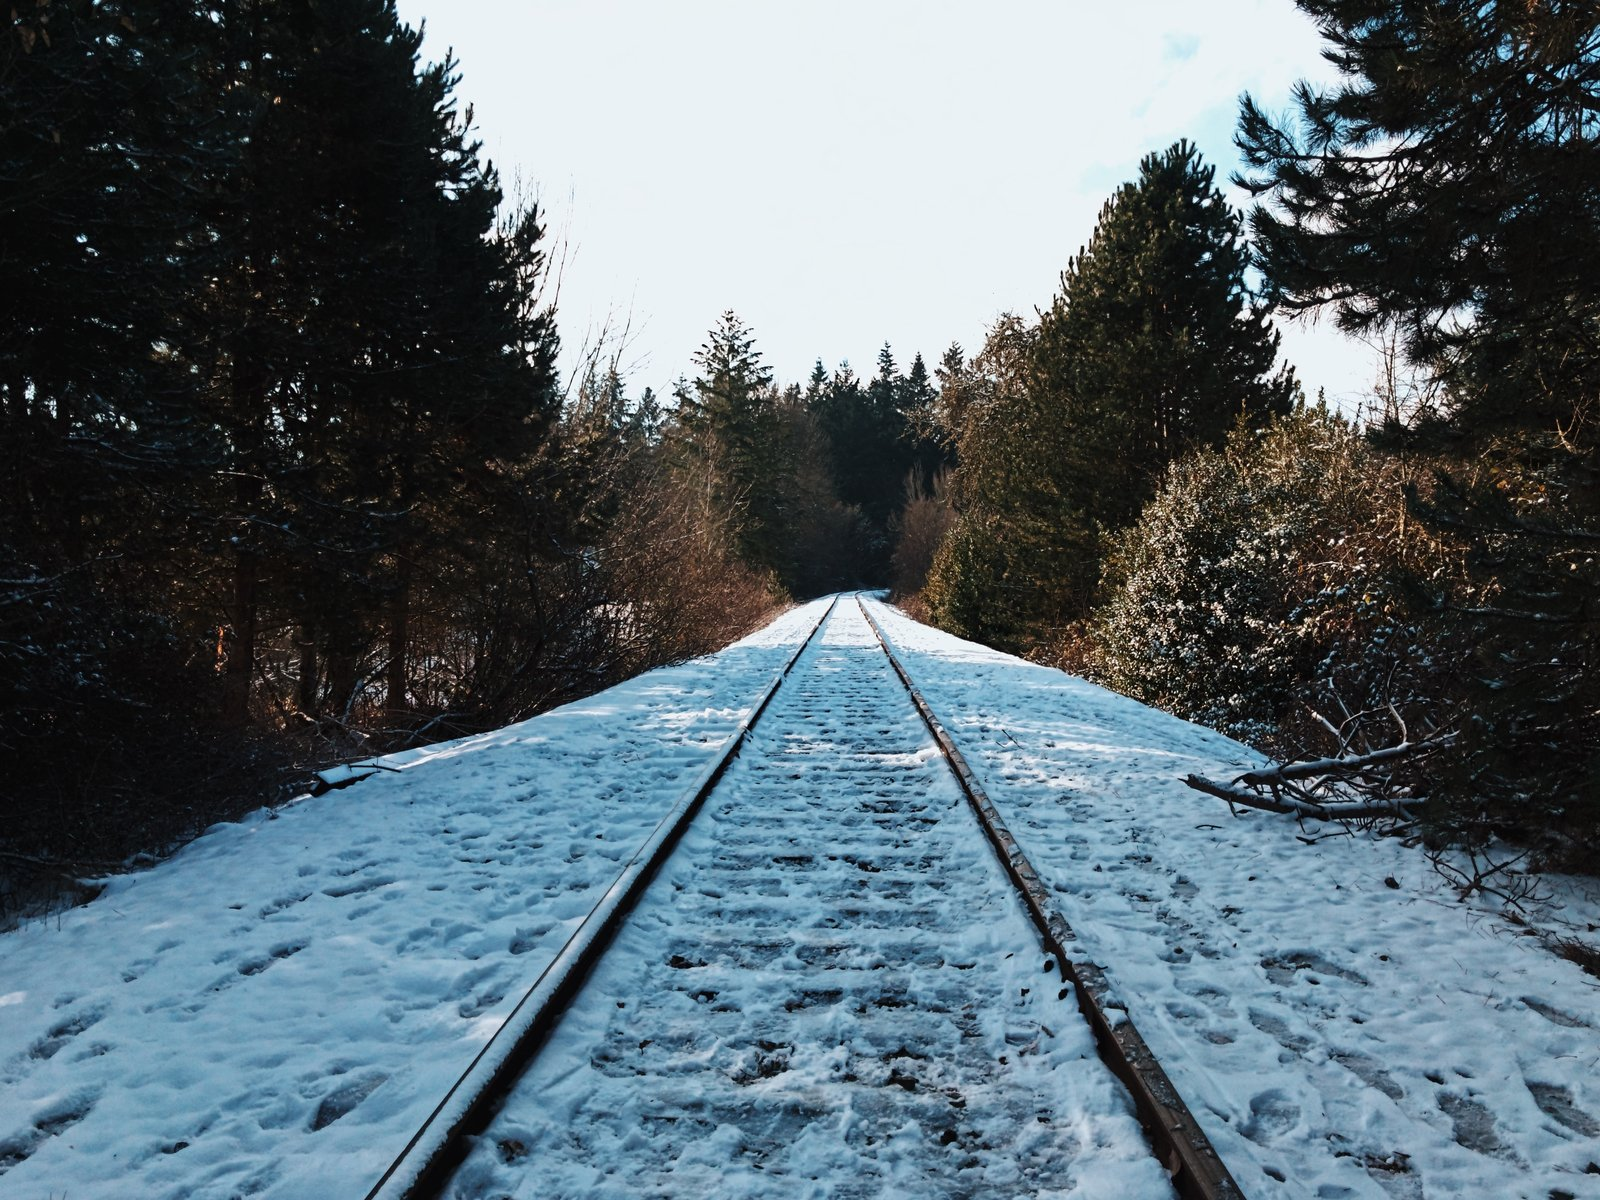 Icy foot tracks mark this snow-pelted section of railroad track.  Photo 8 of 10 in VSCO RAW/X and Topo Designs